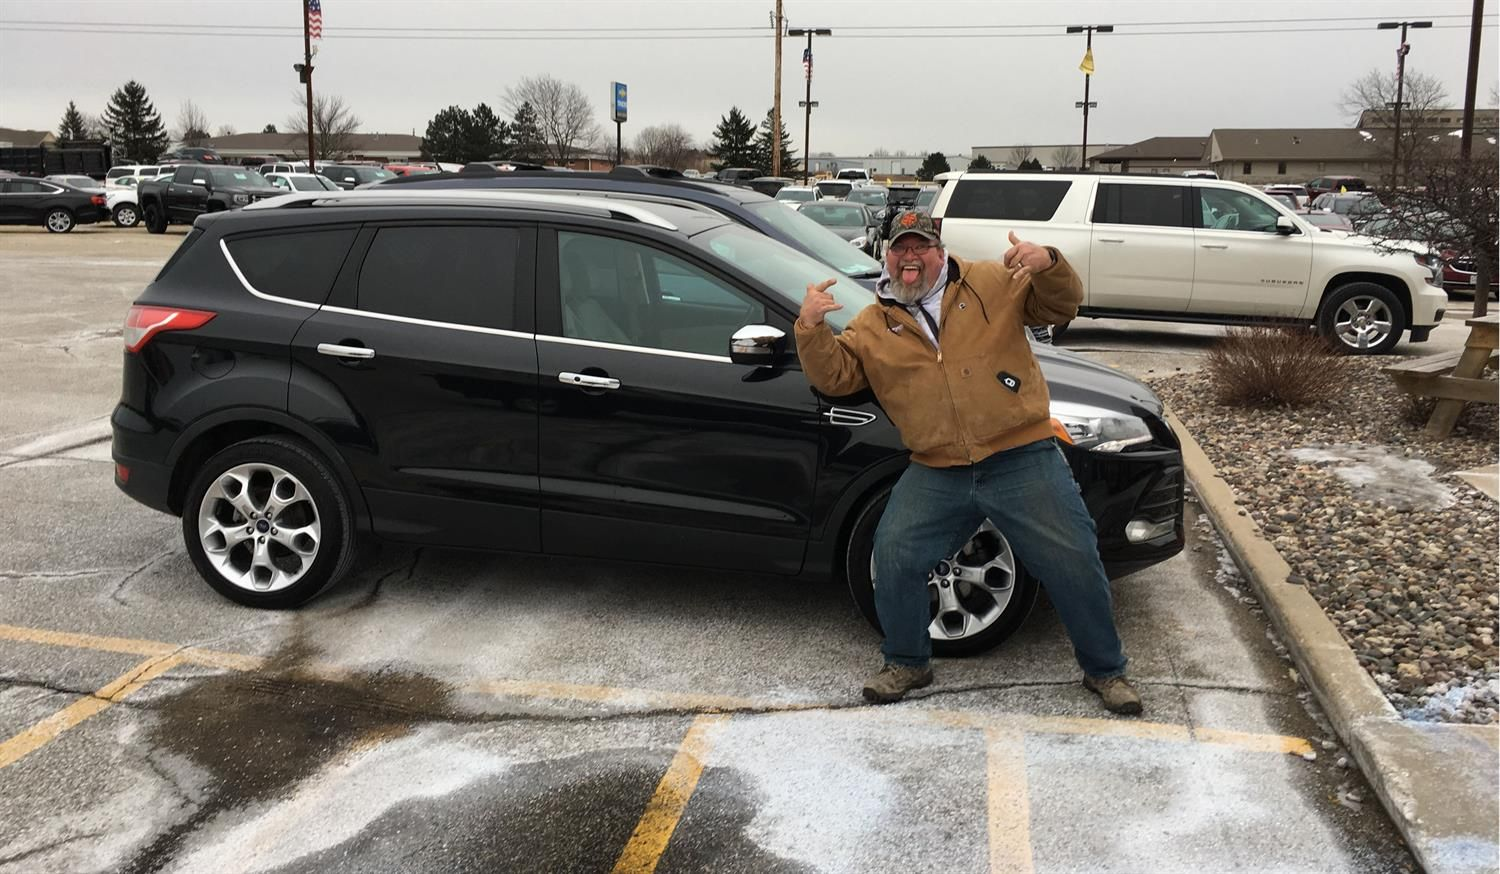 David, we are so excited for all the places you will go in your new ride, safe travels Kunes Country Chevrolet Buick GMC!